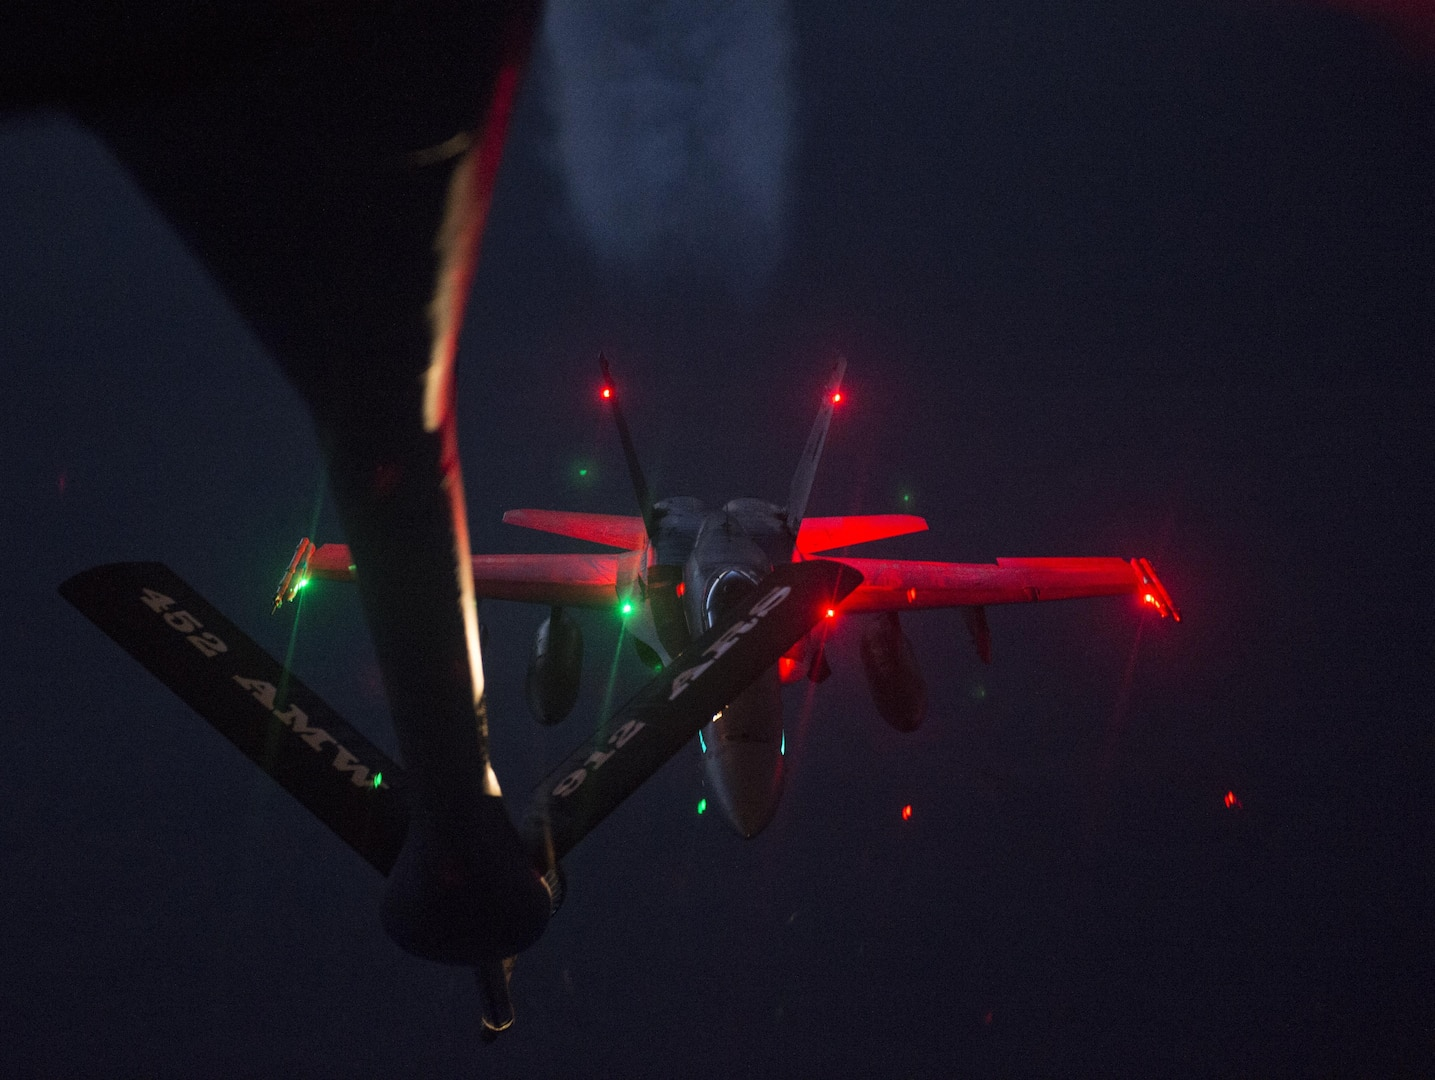 A U.S. Air Force KC-135 Stratotanker flown by the 912th Air Refueling Squadron from March Air Force Base, Calif., provides refueling capabilities to Royal Canadian Air Force CF-18s while both units participate in the Vigilant Shield 2017 Field Training Exercise 20 Oct., 2016, in the high arctic.  VS17 is an annual exercise sponsored by The North American Aerospace Defense Command and led by Alaskan NORAD Region, in conjunction with Canadian NORAD Region and Continental NORAD Region, who undertake field training exercises aimed at improving operational capability in a bi-national environment.  This year's exercise sees NORAD building on previous years' training successes when deploying air assets and personnel to the far north to exercise sovereignty operations in North America's northern aerospace and in the high Arctic. This exercise provides crucial training opportunities for numerous military personnel with a variety of aircraft and assets from Canada and the United States to improve interoperability and to demonstrate NORAD's ability to defend North America. (U.S. Air Force Photo by Tech. Sgt. Gregory Brook)